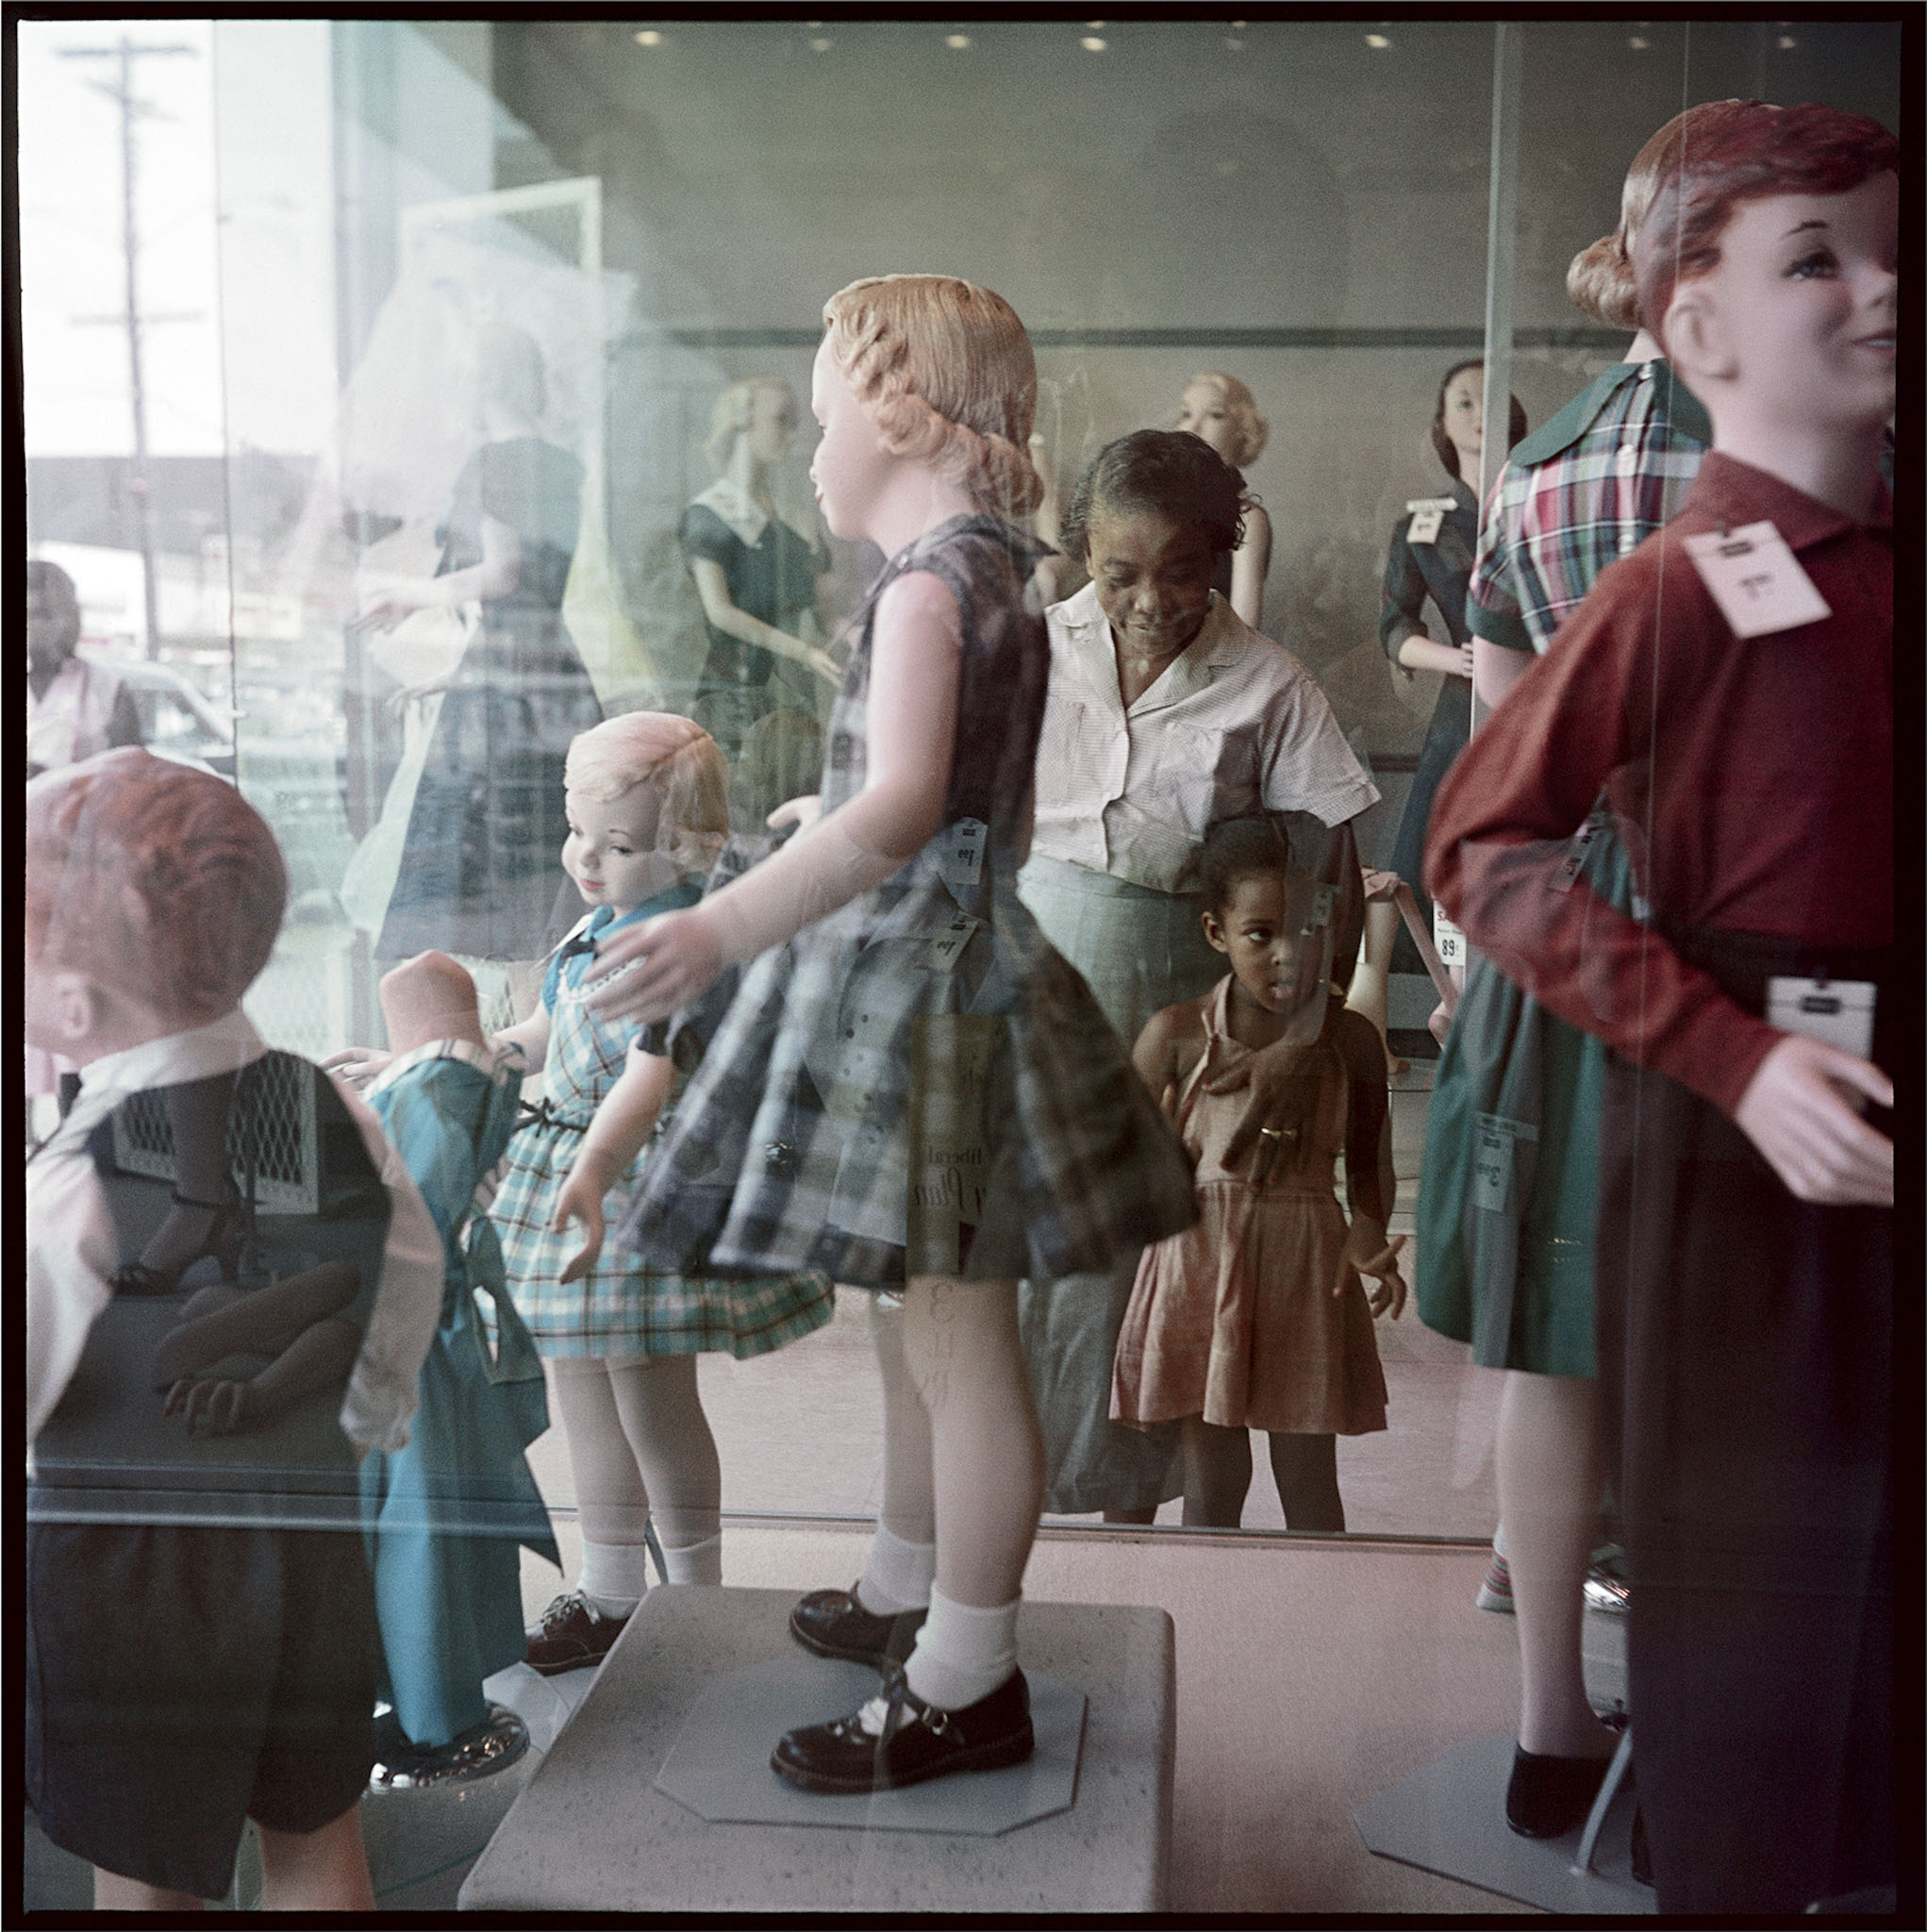 Gordon Parks, Ondria Tanner and Her Grandmother Window-shopping, Mobile, Alabama, 1956, Copyright: The Gordon Parks Foundation